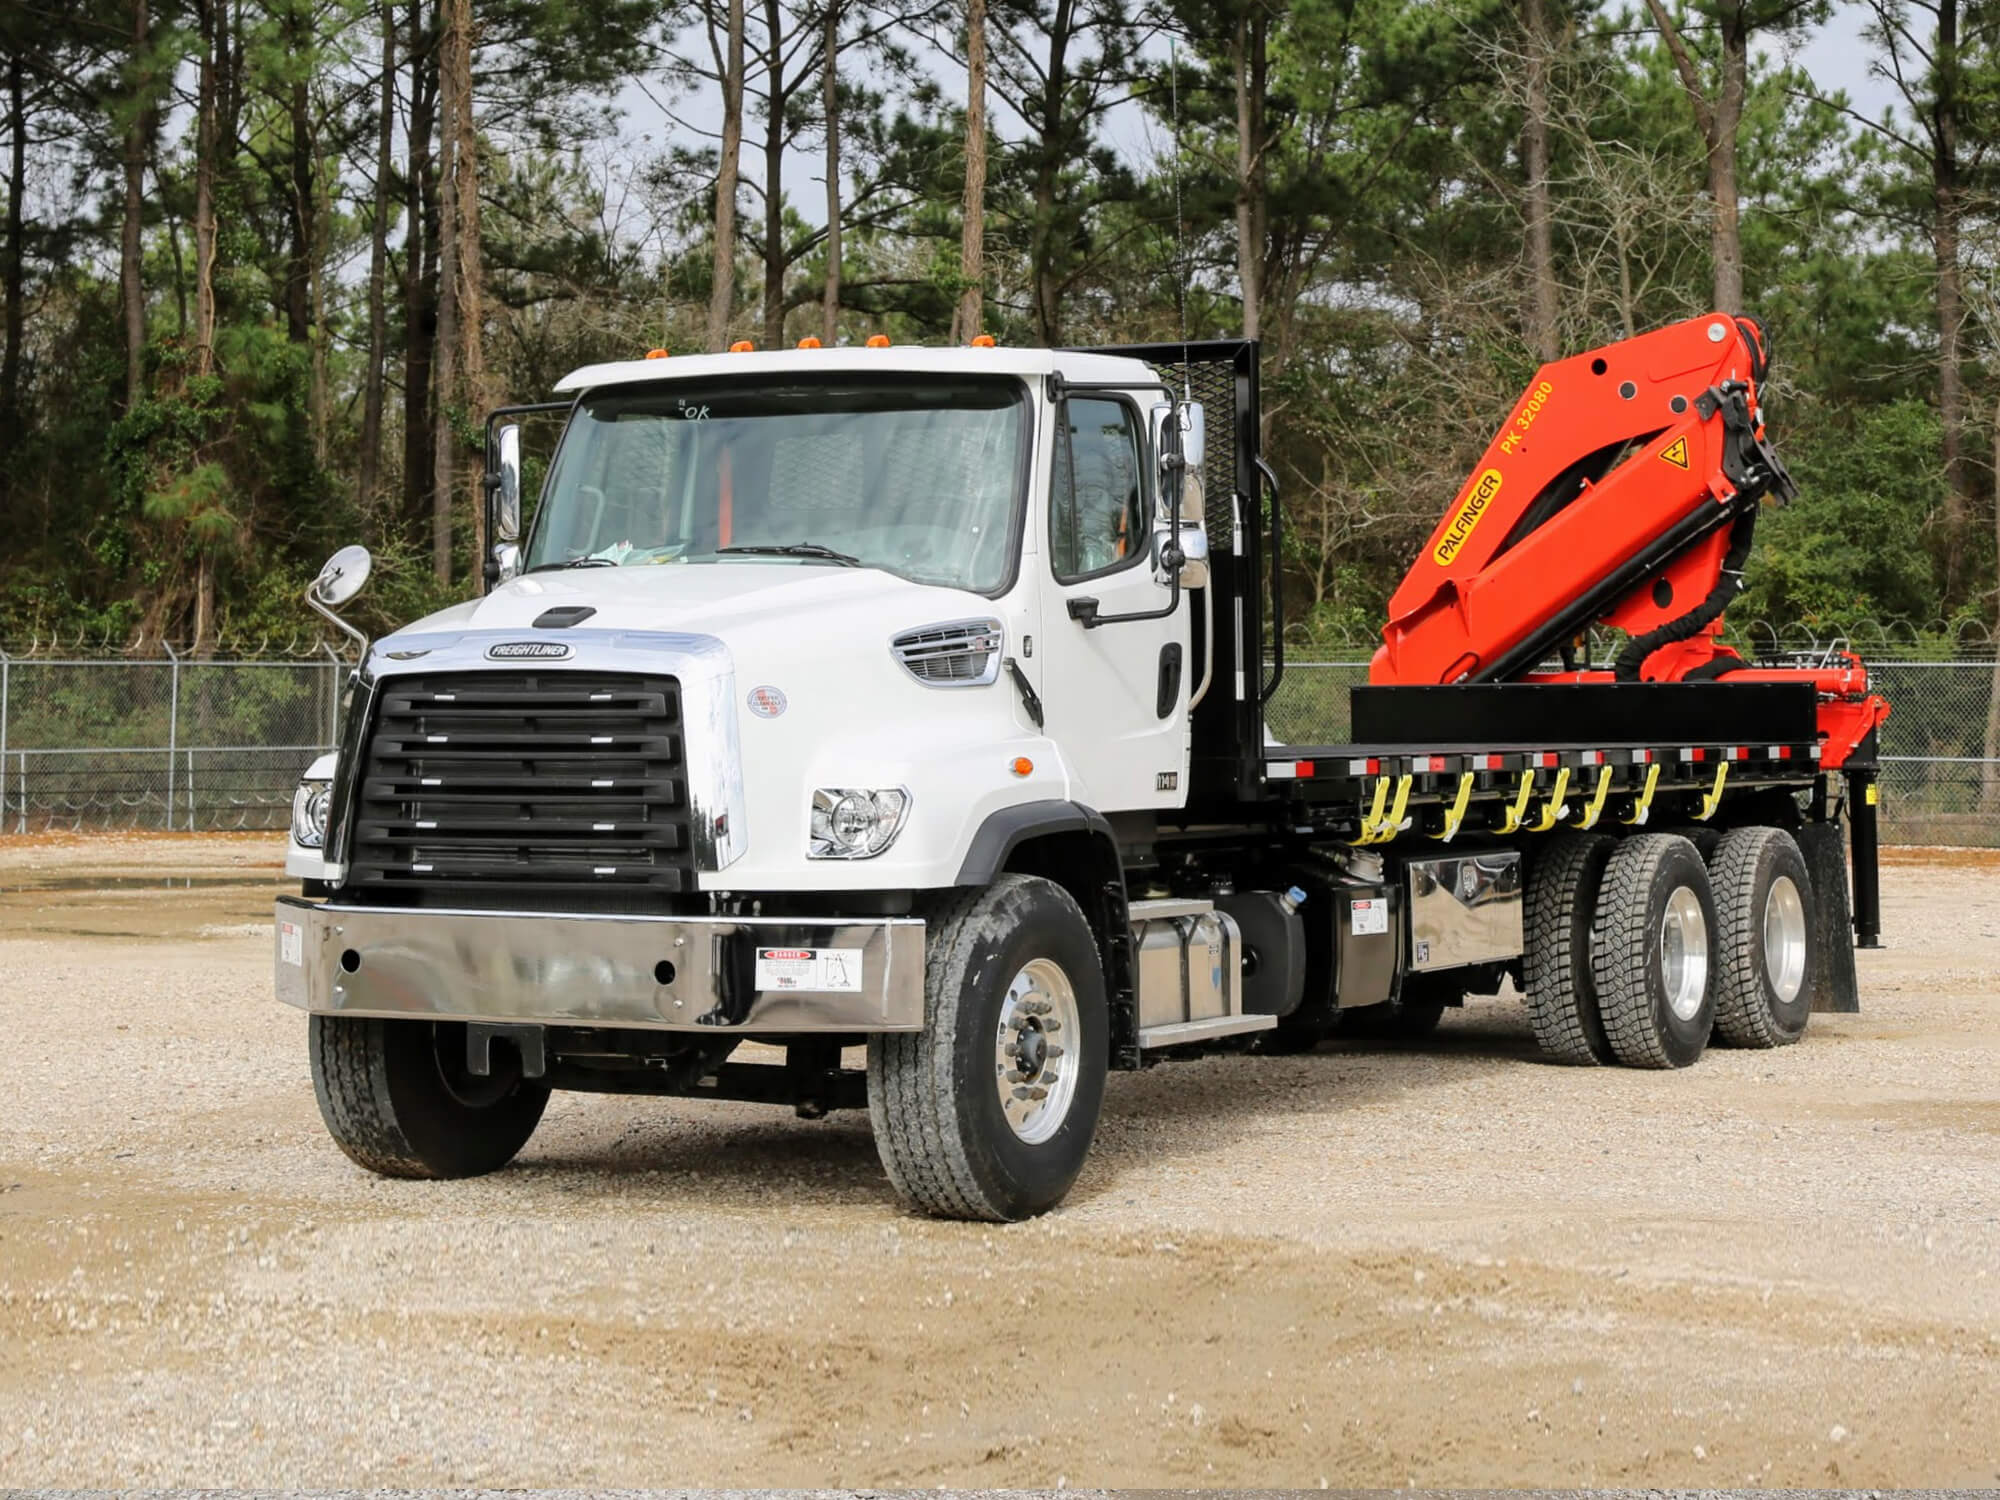 Palfinger knuckle boom truck on Freightliner chassis